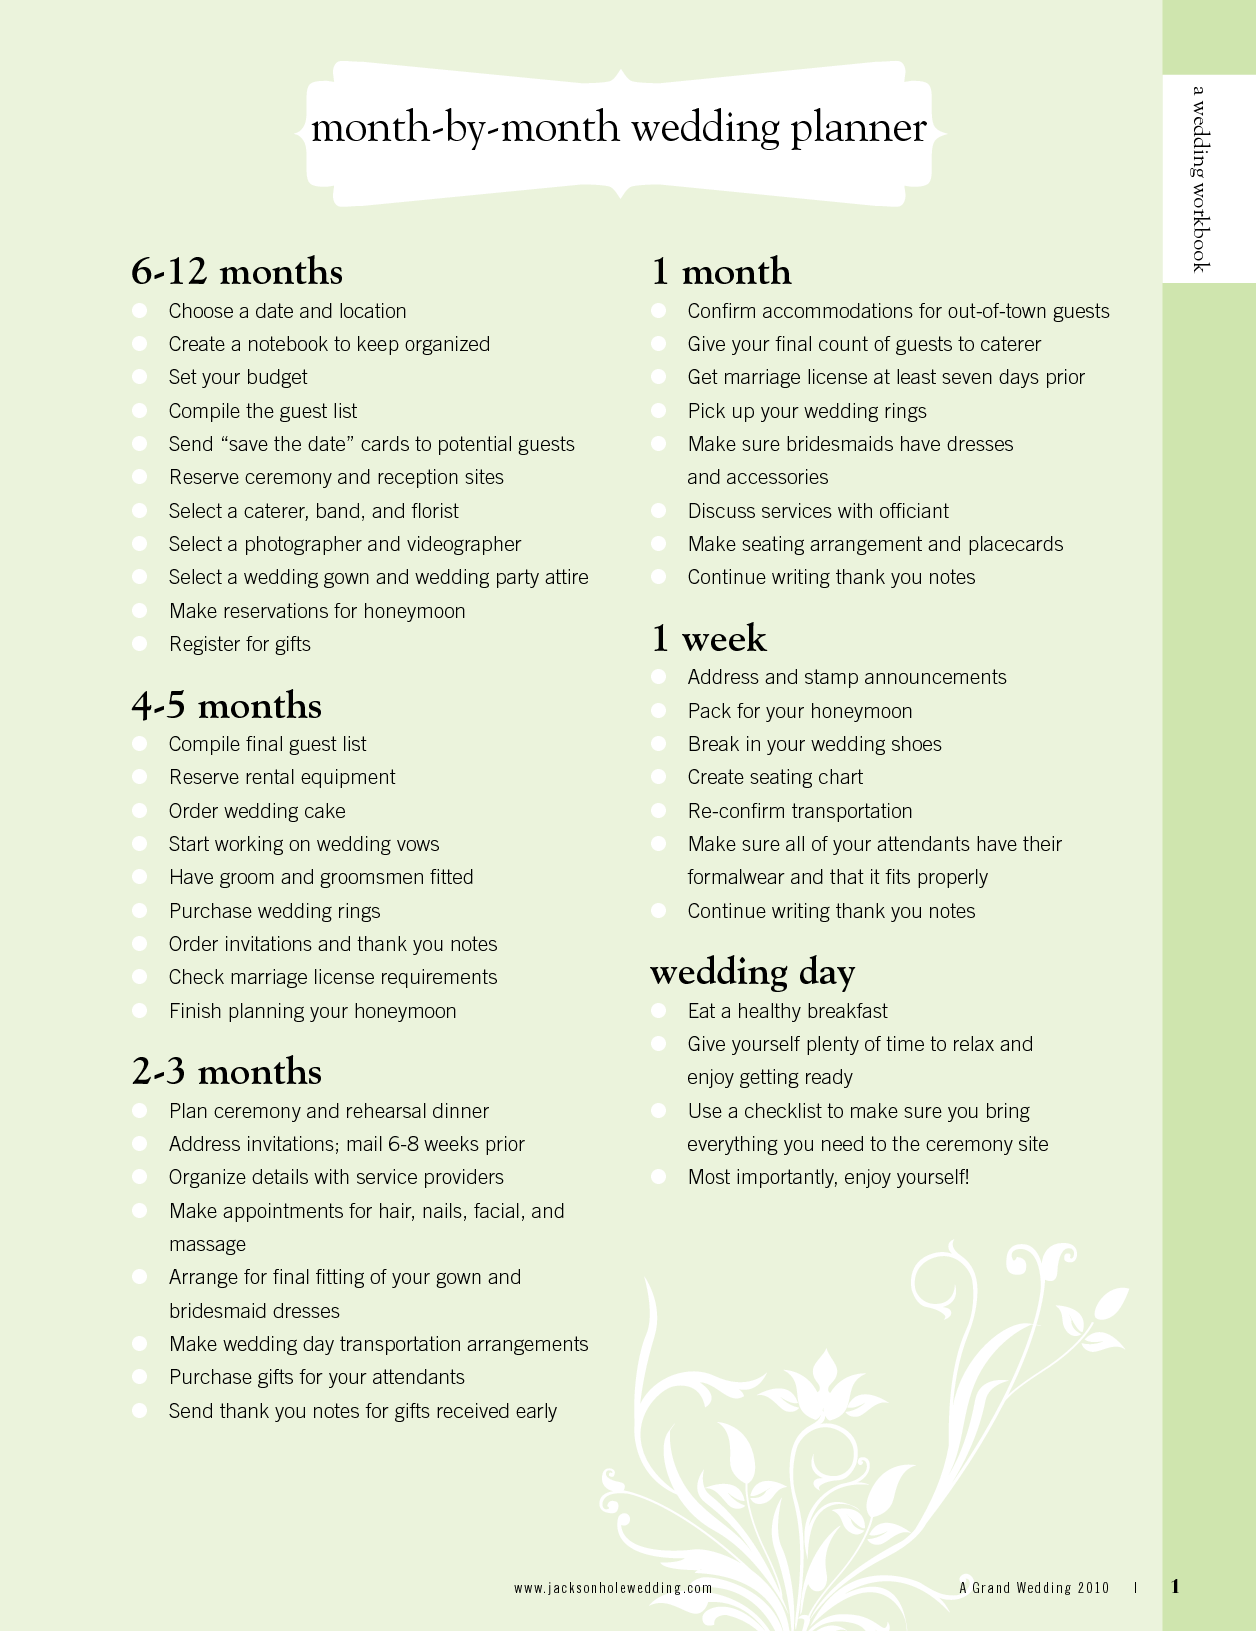 12 month wedding checklist printable pictures to pin on pinterest pinsdaddy